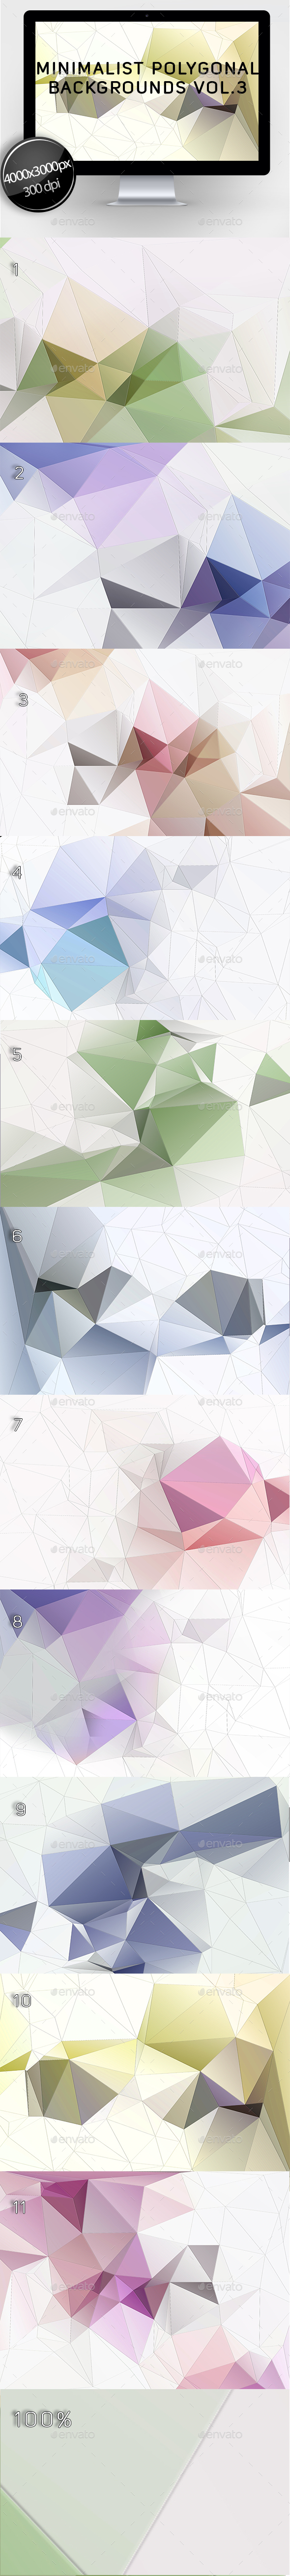 Minimalist Polygonal Backgrounds Vol.3 - Abstract Backgrounds